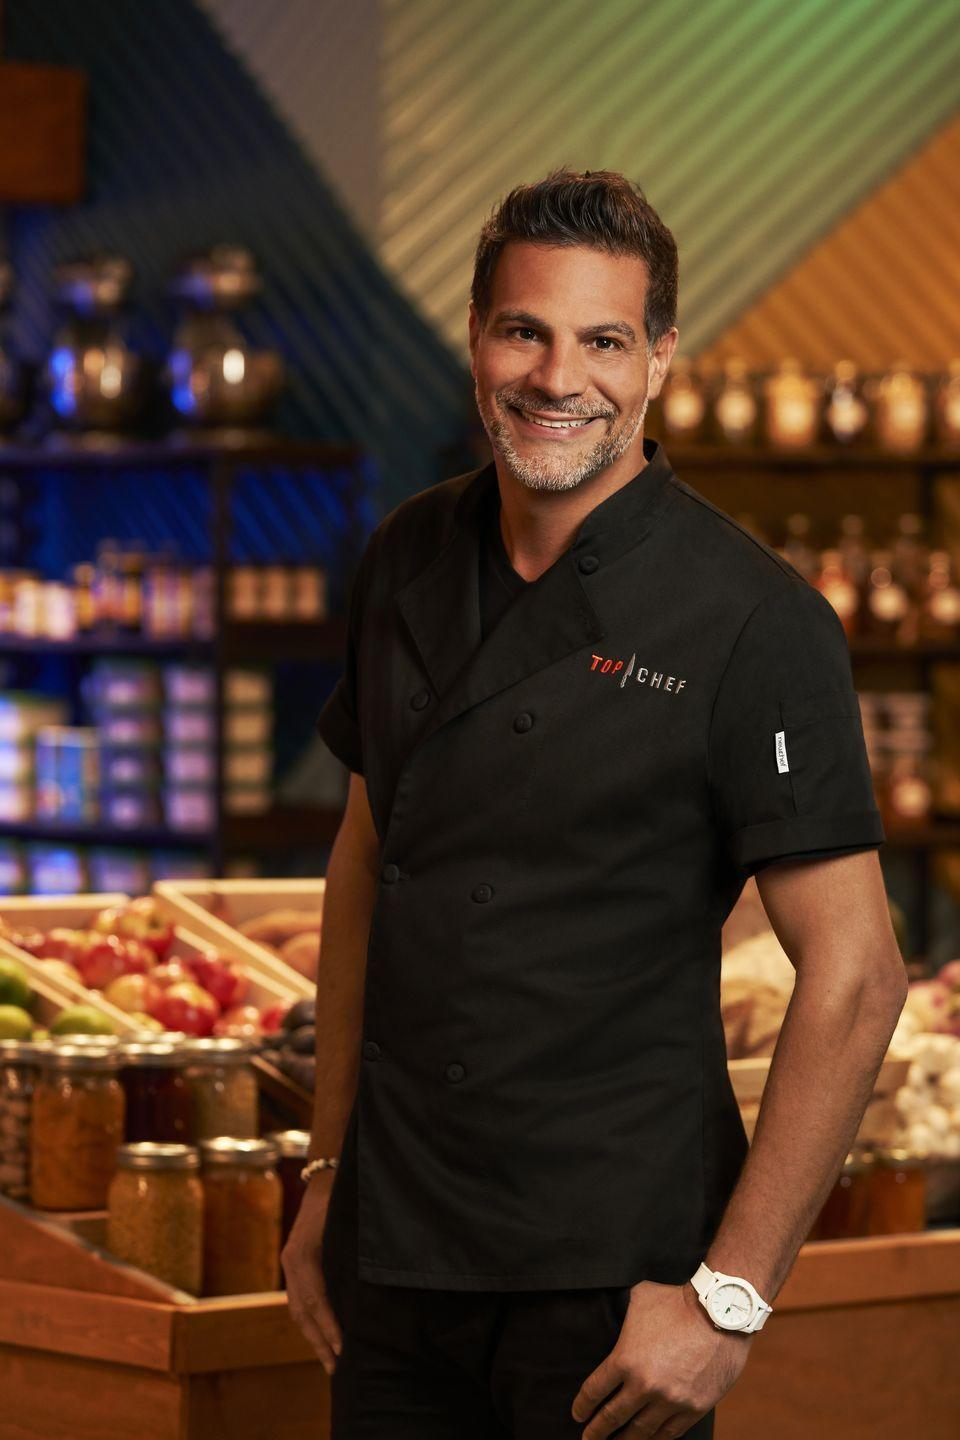 <p>Ten years after he graced the <em>Top Chef </em>kitchen for the first time, Angelo returned for season 17 of the show. Since competing, he's opened up several restaurants, including New York City hotspot Añejo, and has written several cookbooks.</p>